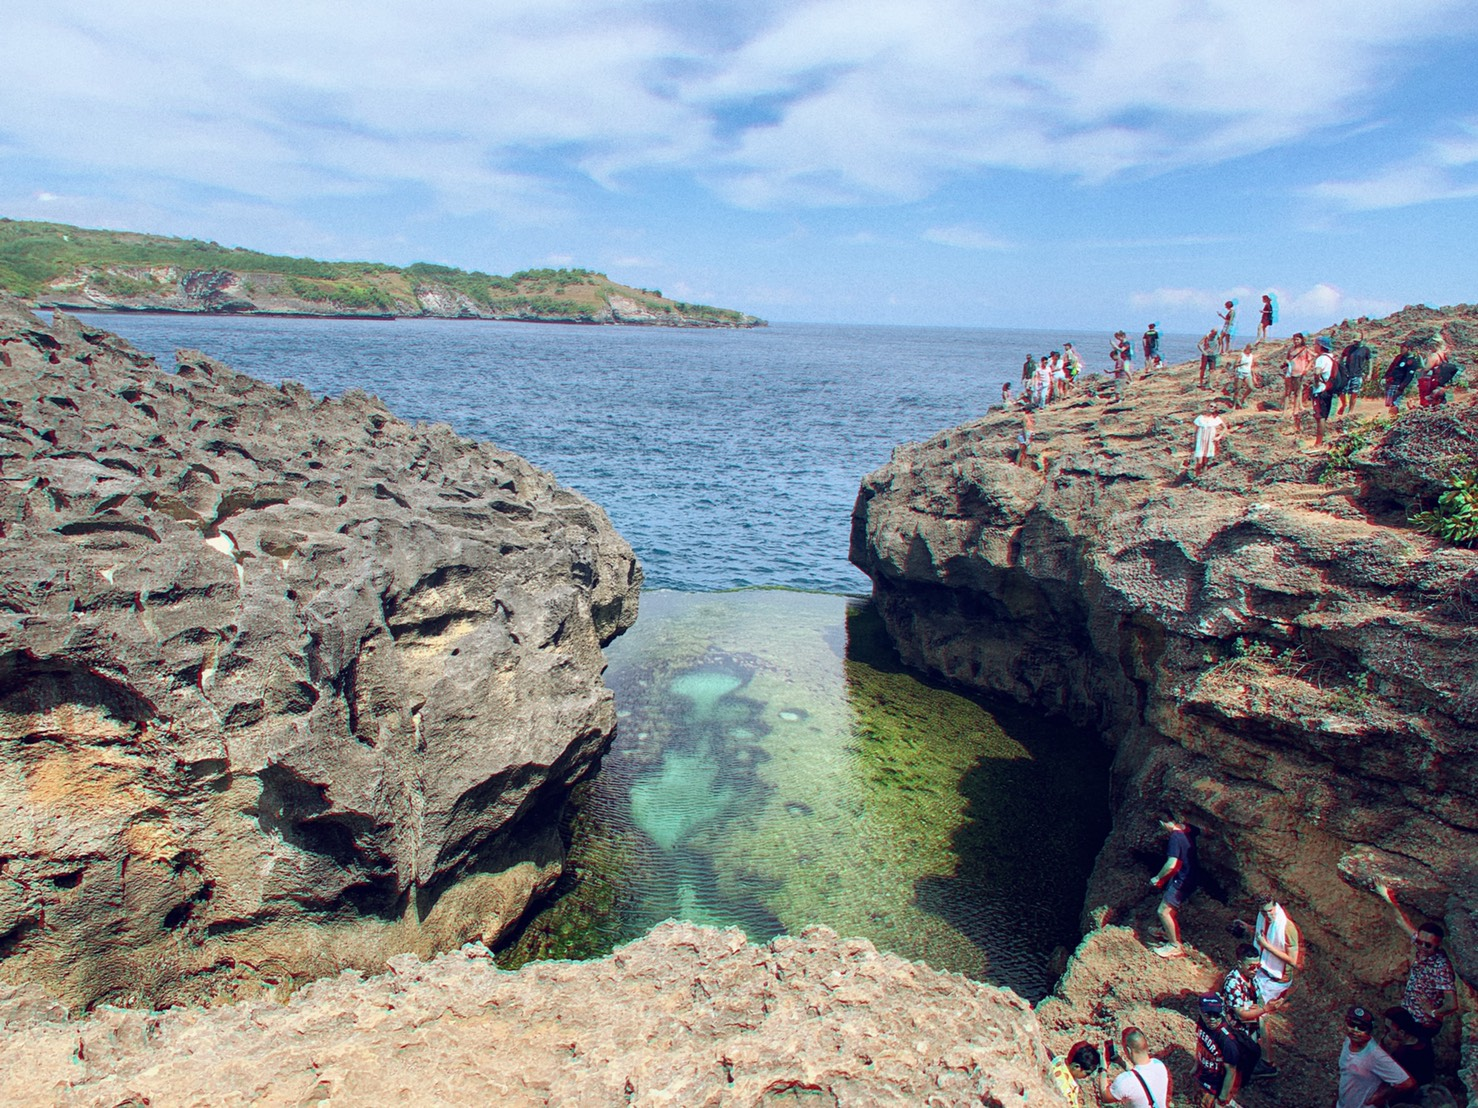 Angel's billabong เกาะ Nusa Penida